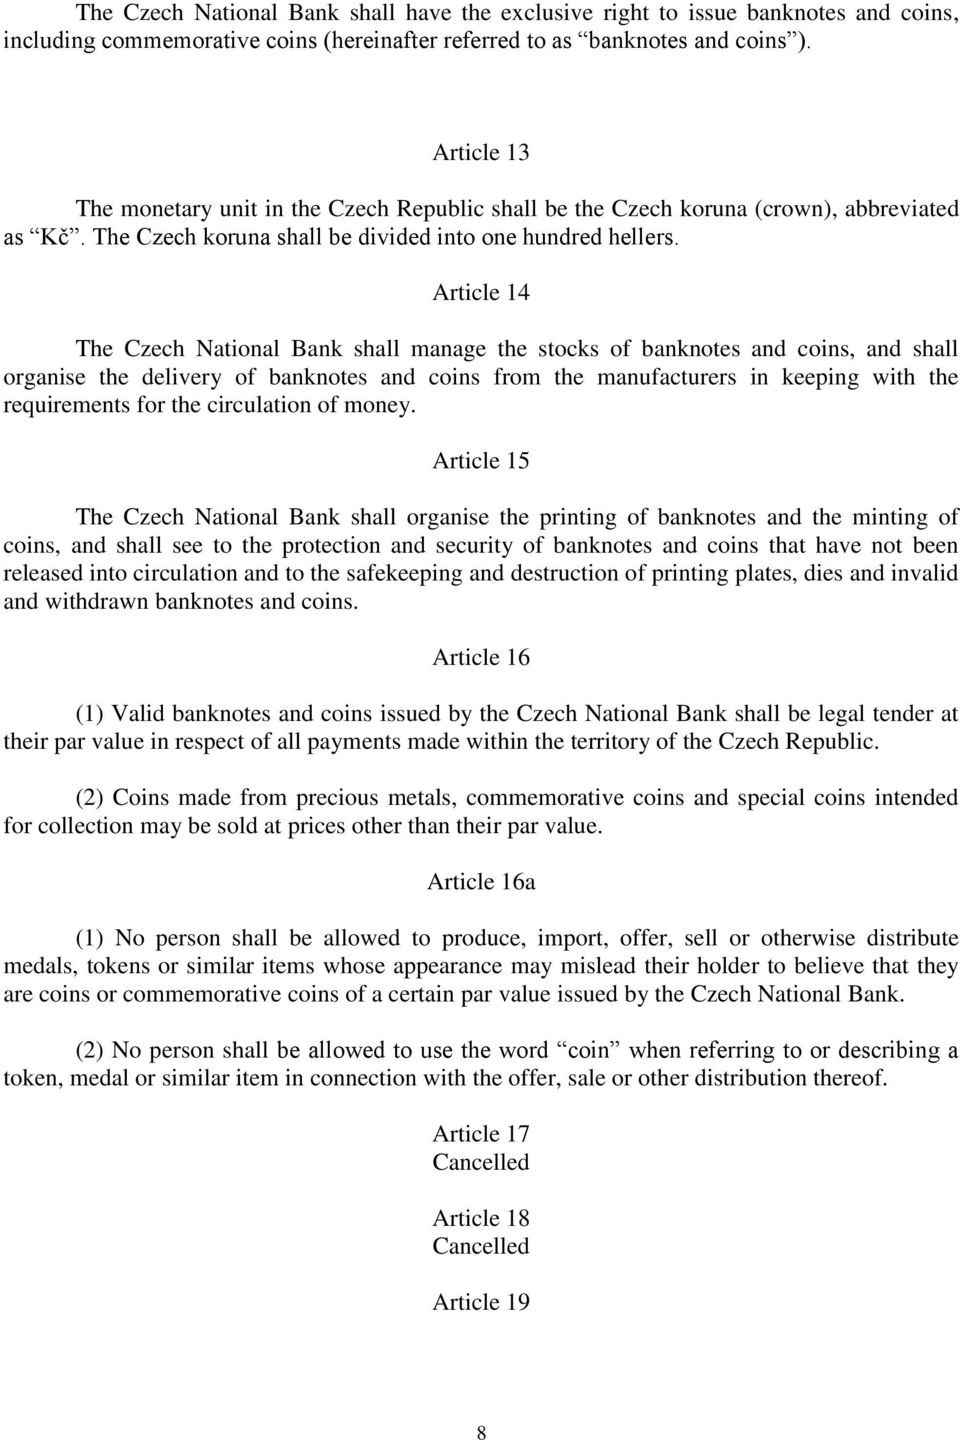 Article 14 The Czech National Bank shall manage the stocks of banknotes and coins, and shall organise the delivery of banknotes and coins from the manufacturers in keeping with the requirements for